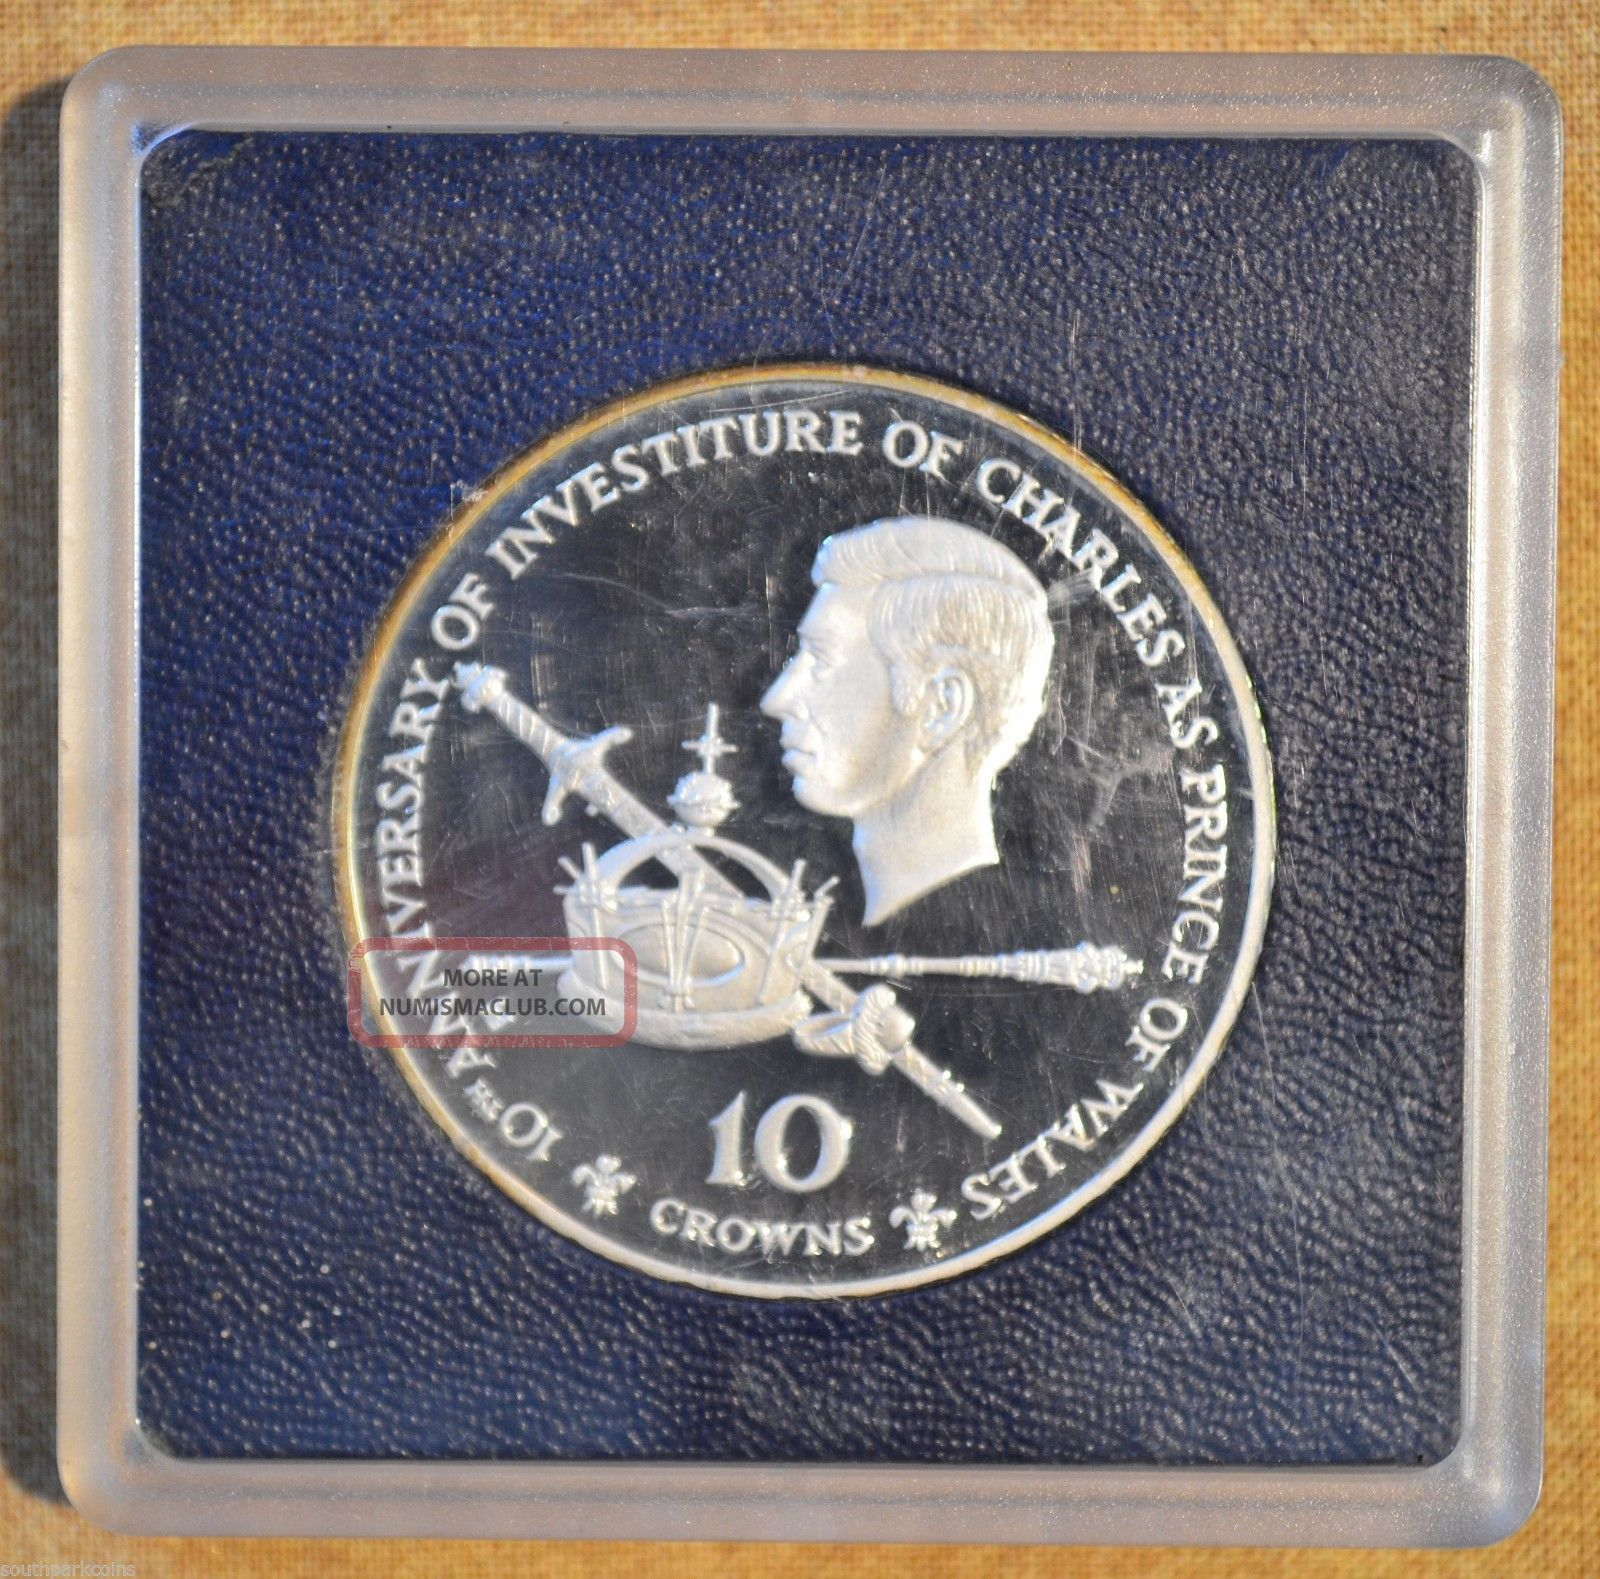 1976 Silver Turks & Caicos Islands 10 Crowns Proof 10th Anniv.  Prince Chalres Coins: World photo